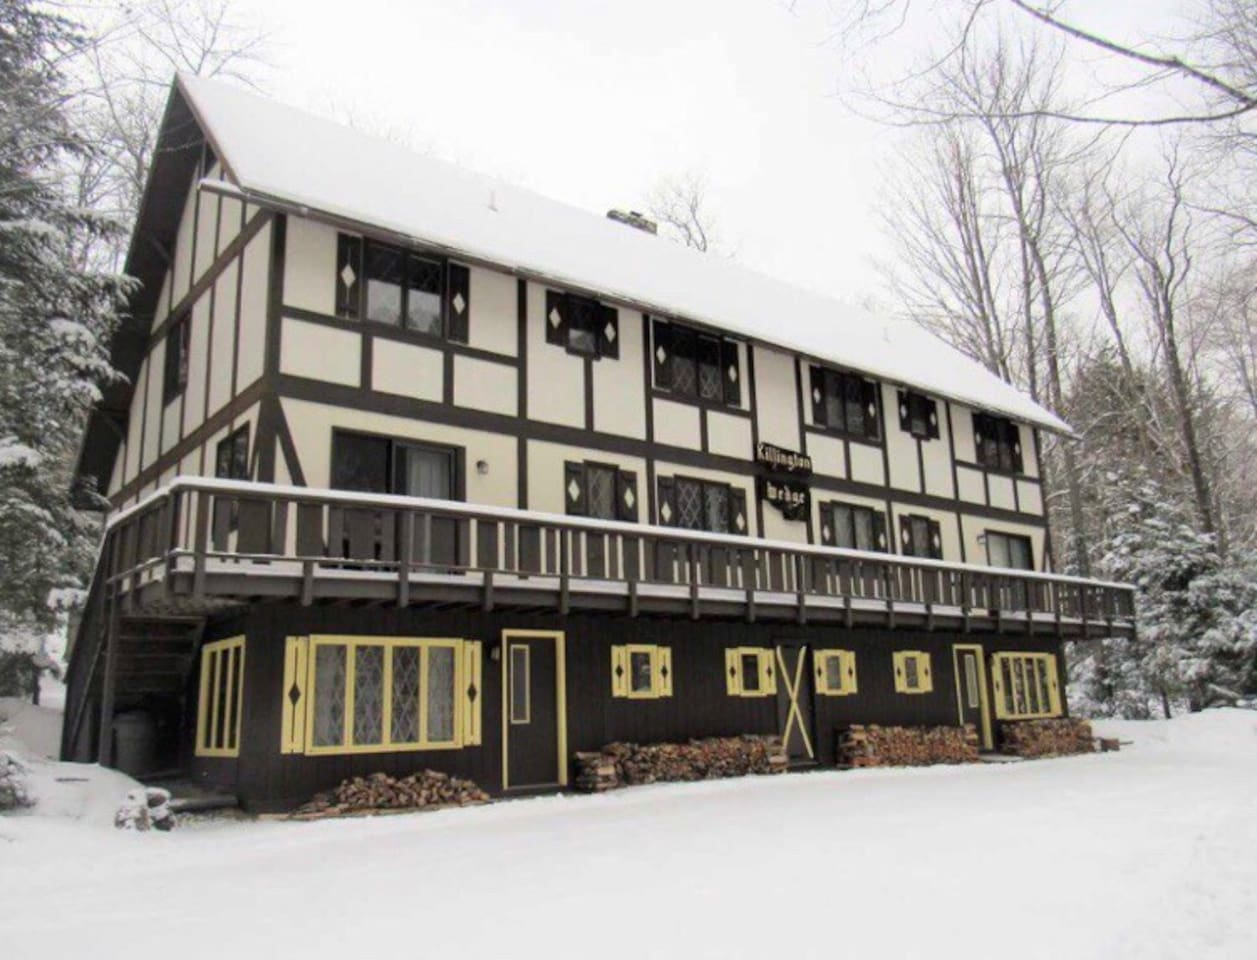 Welcome to Killington's Brookside Manor. The Canyons Unit is the lower right entrance.